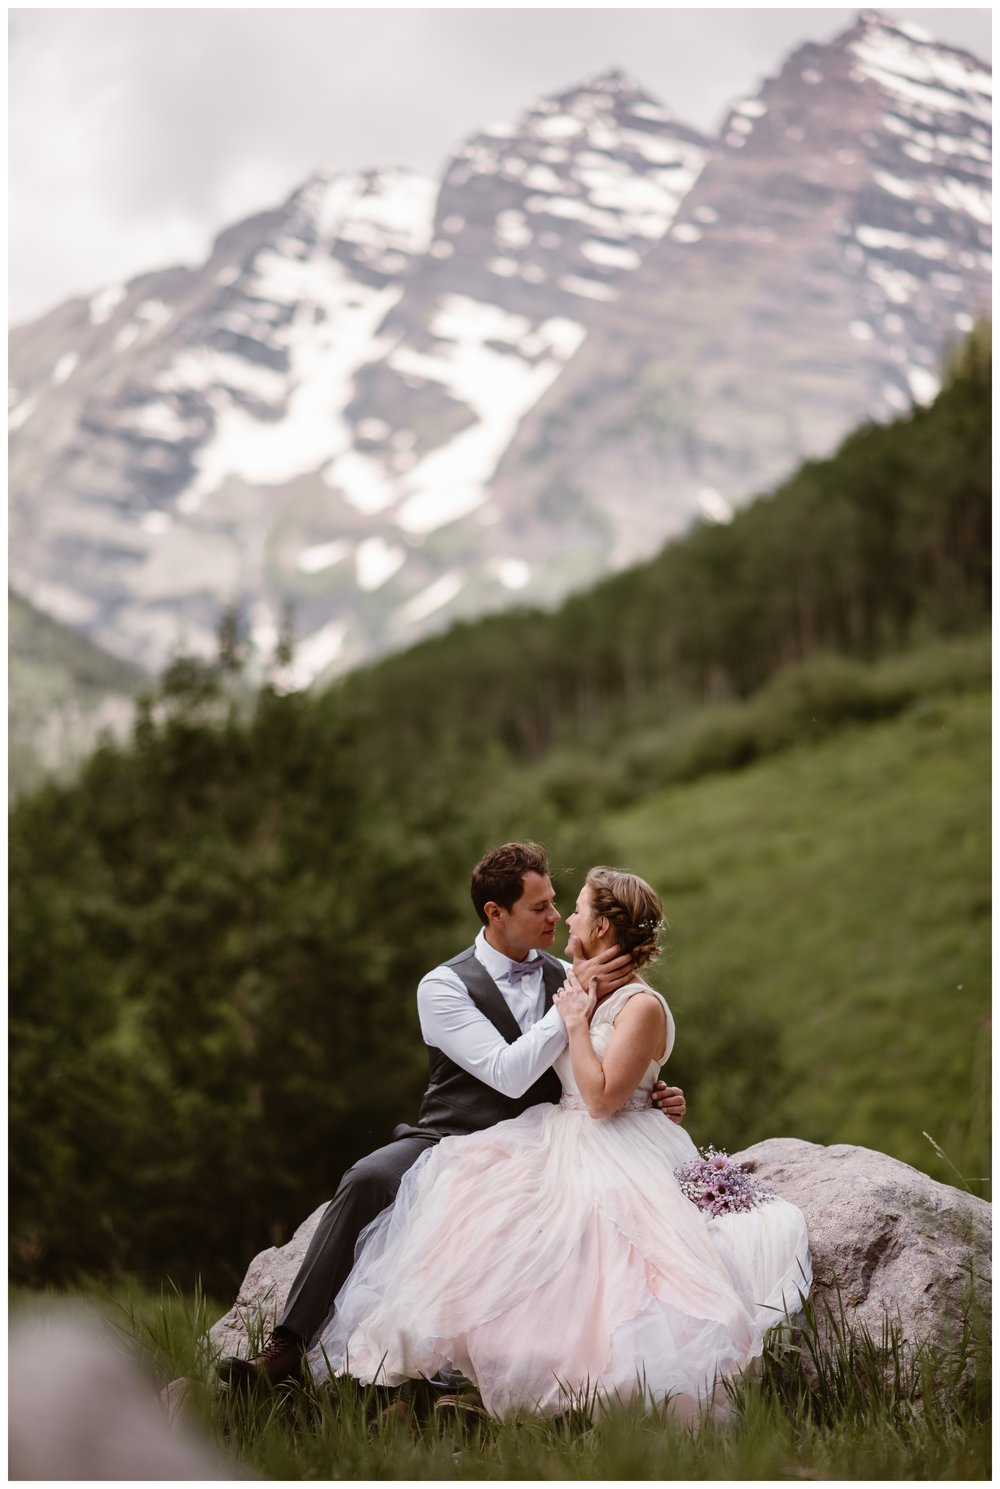 With Colorado's famous Maroon Bells behind them, Marcela and Vasily embrace following their intimate elopement ceremony. Photo by Maddie Mae, Adventure Instead.